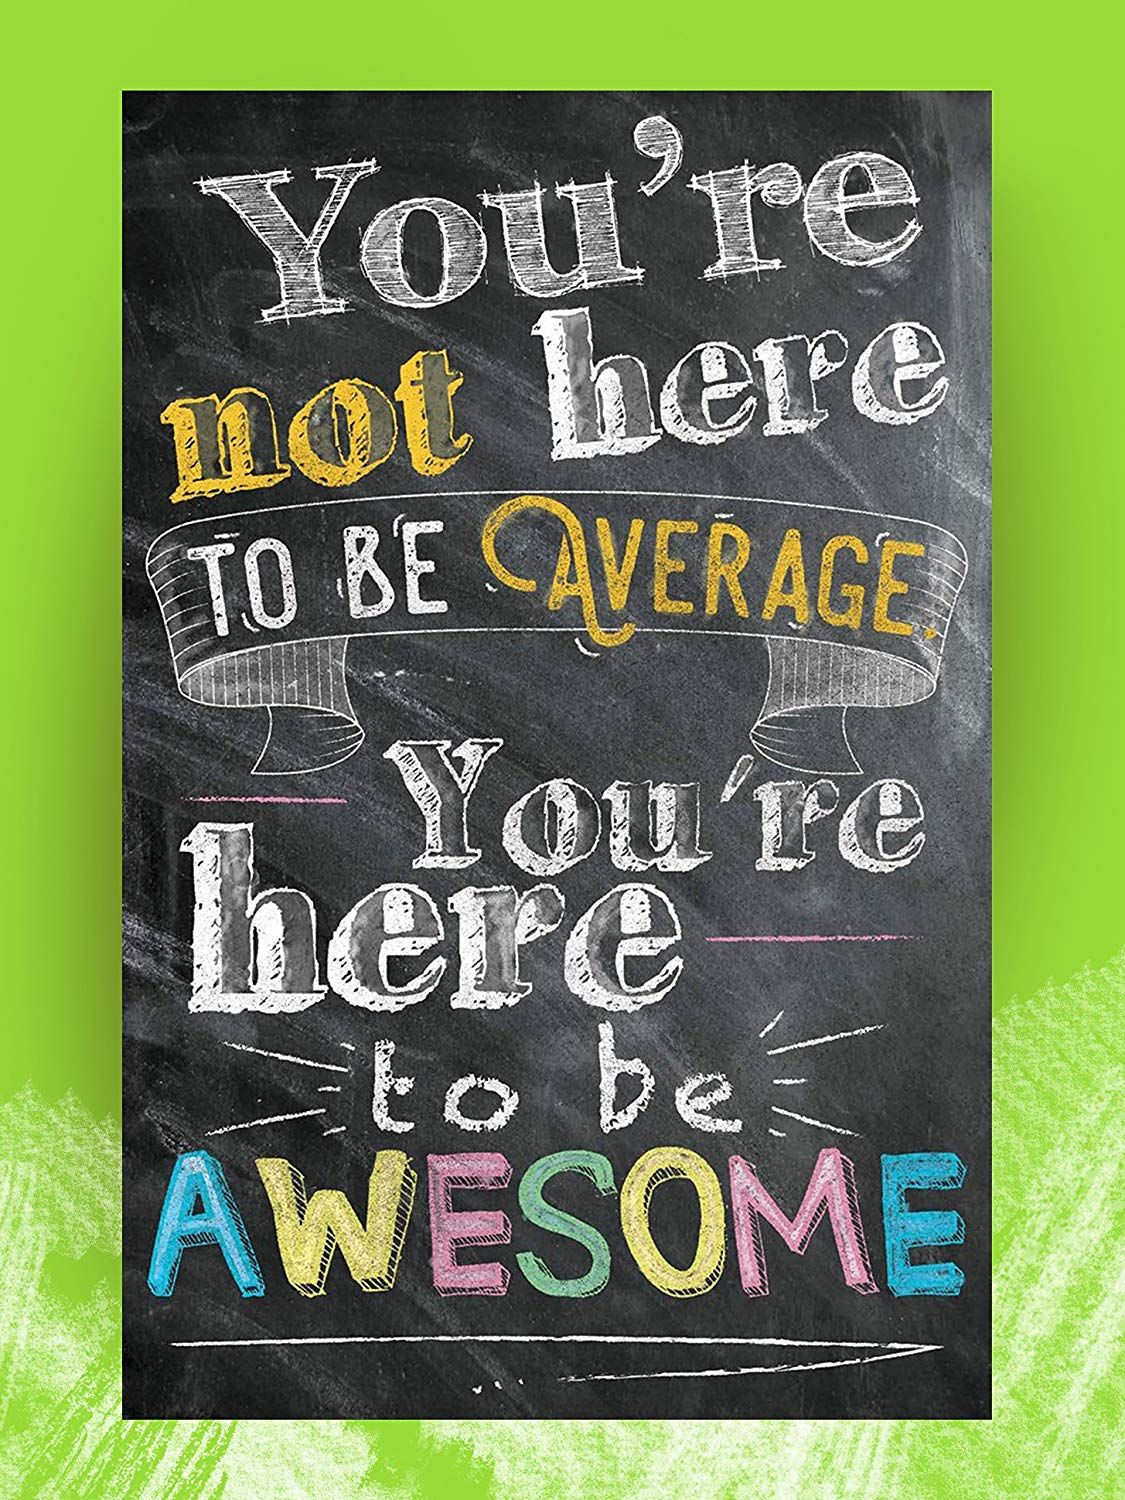 Amazon Com Motivational And Inspirational Posters And Classroom Decora Inspirational Quotes Posters Motivational Posters For Office Motivational Quote Posters